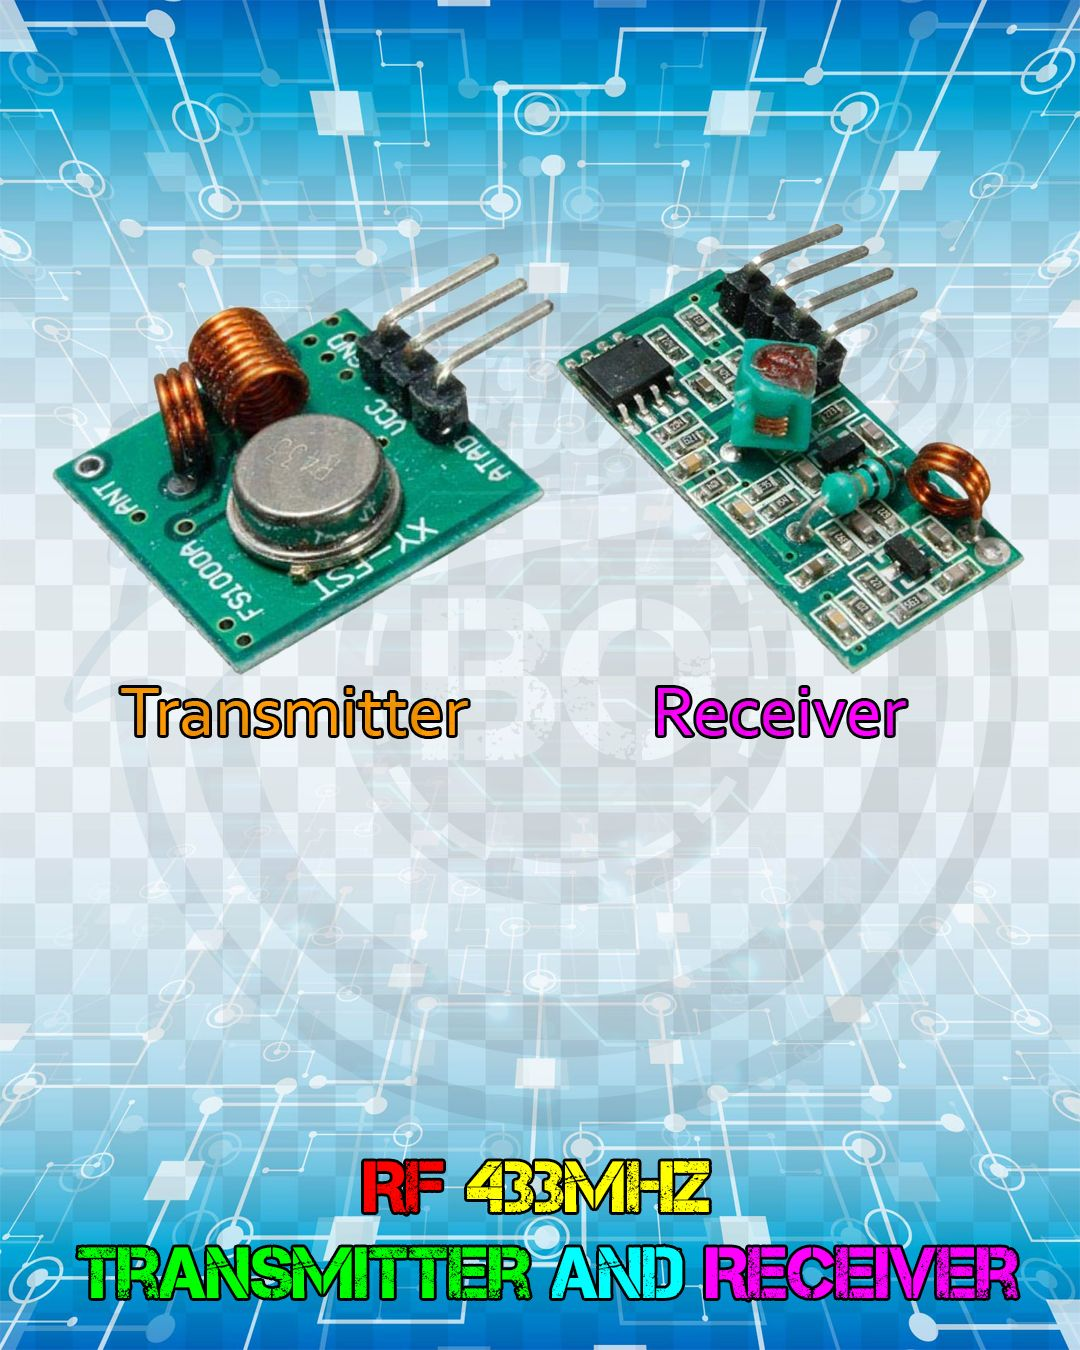 RF 433MHz Transmitter and Receiver. in 2019 Electronic